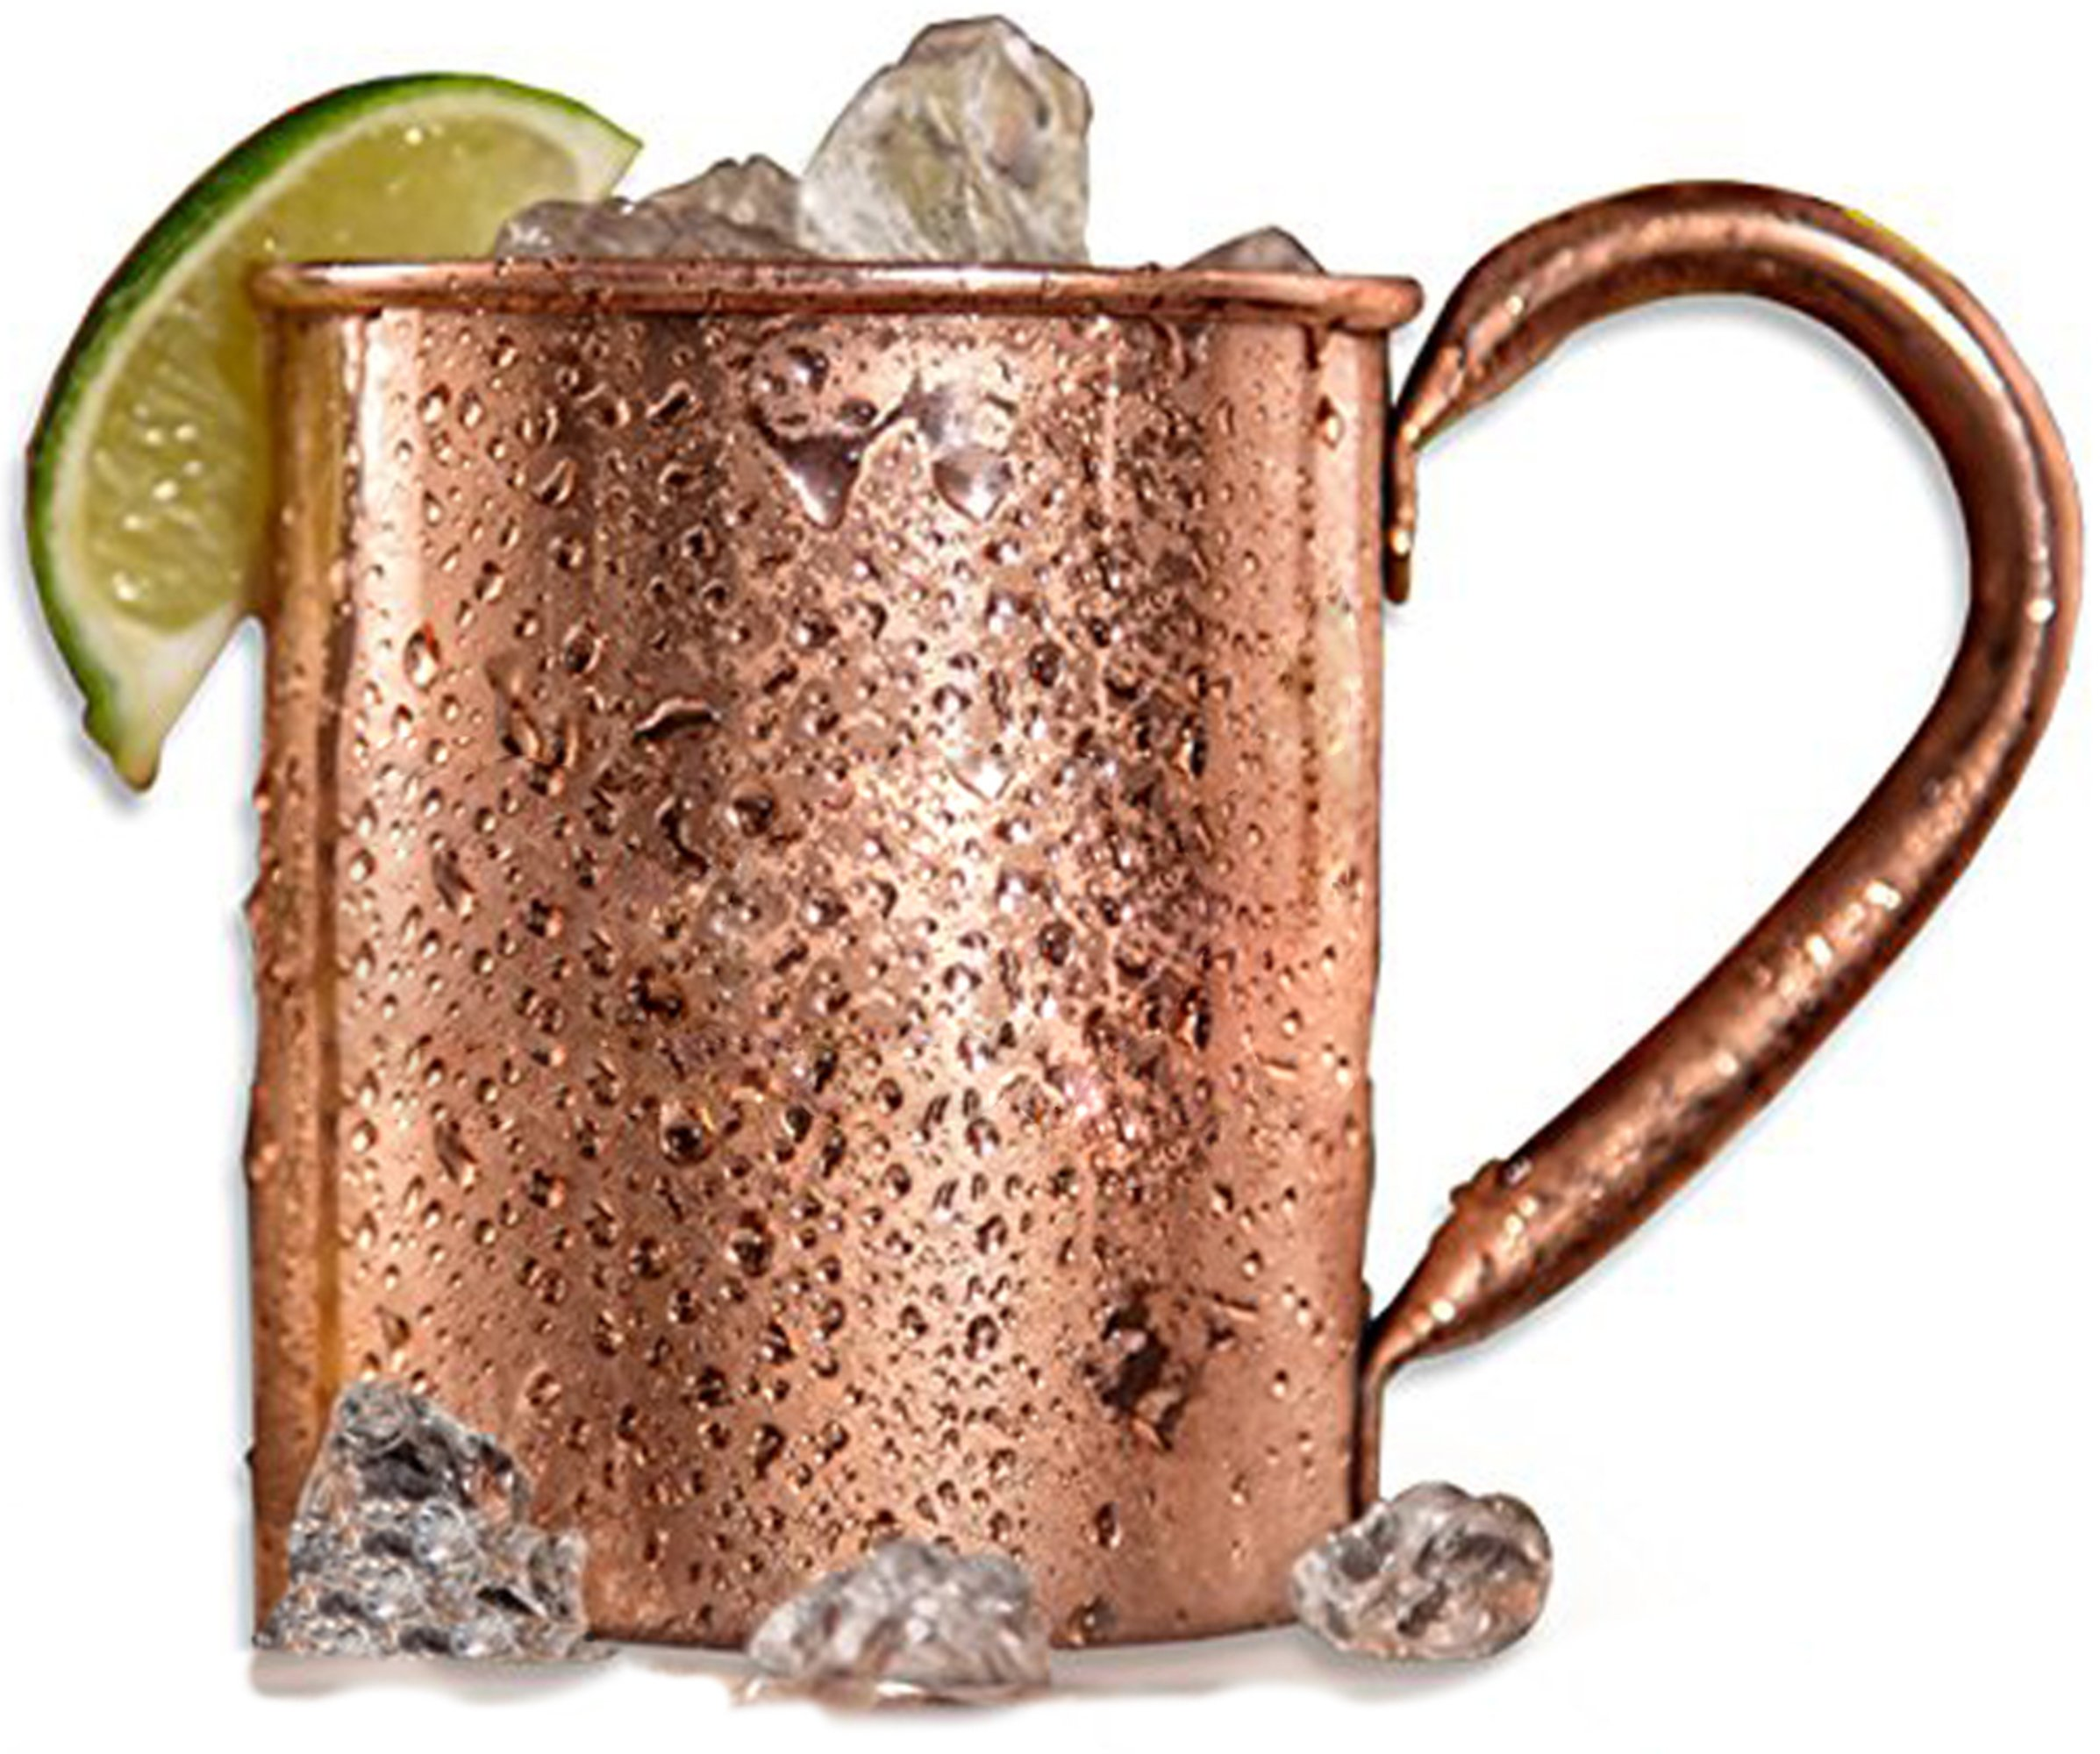 Copper Cup for Moscow Mule, 100% Pure Solid Copper Drinking Mug, Unlined, No Alloying, Nickel, Or Tin, 16 Oz, Handcrafted, Food Safe, Bonus E-Book With Moscow Mule Recipes